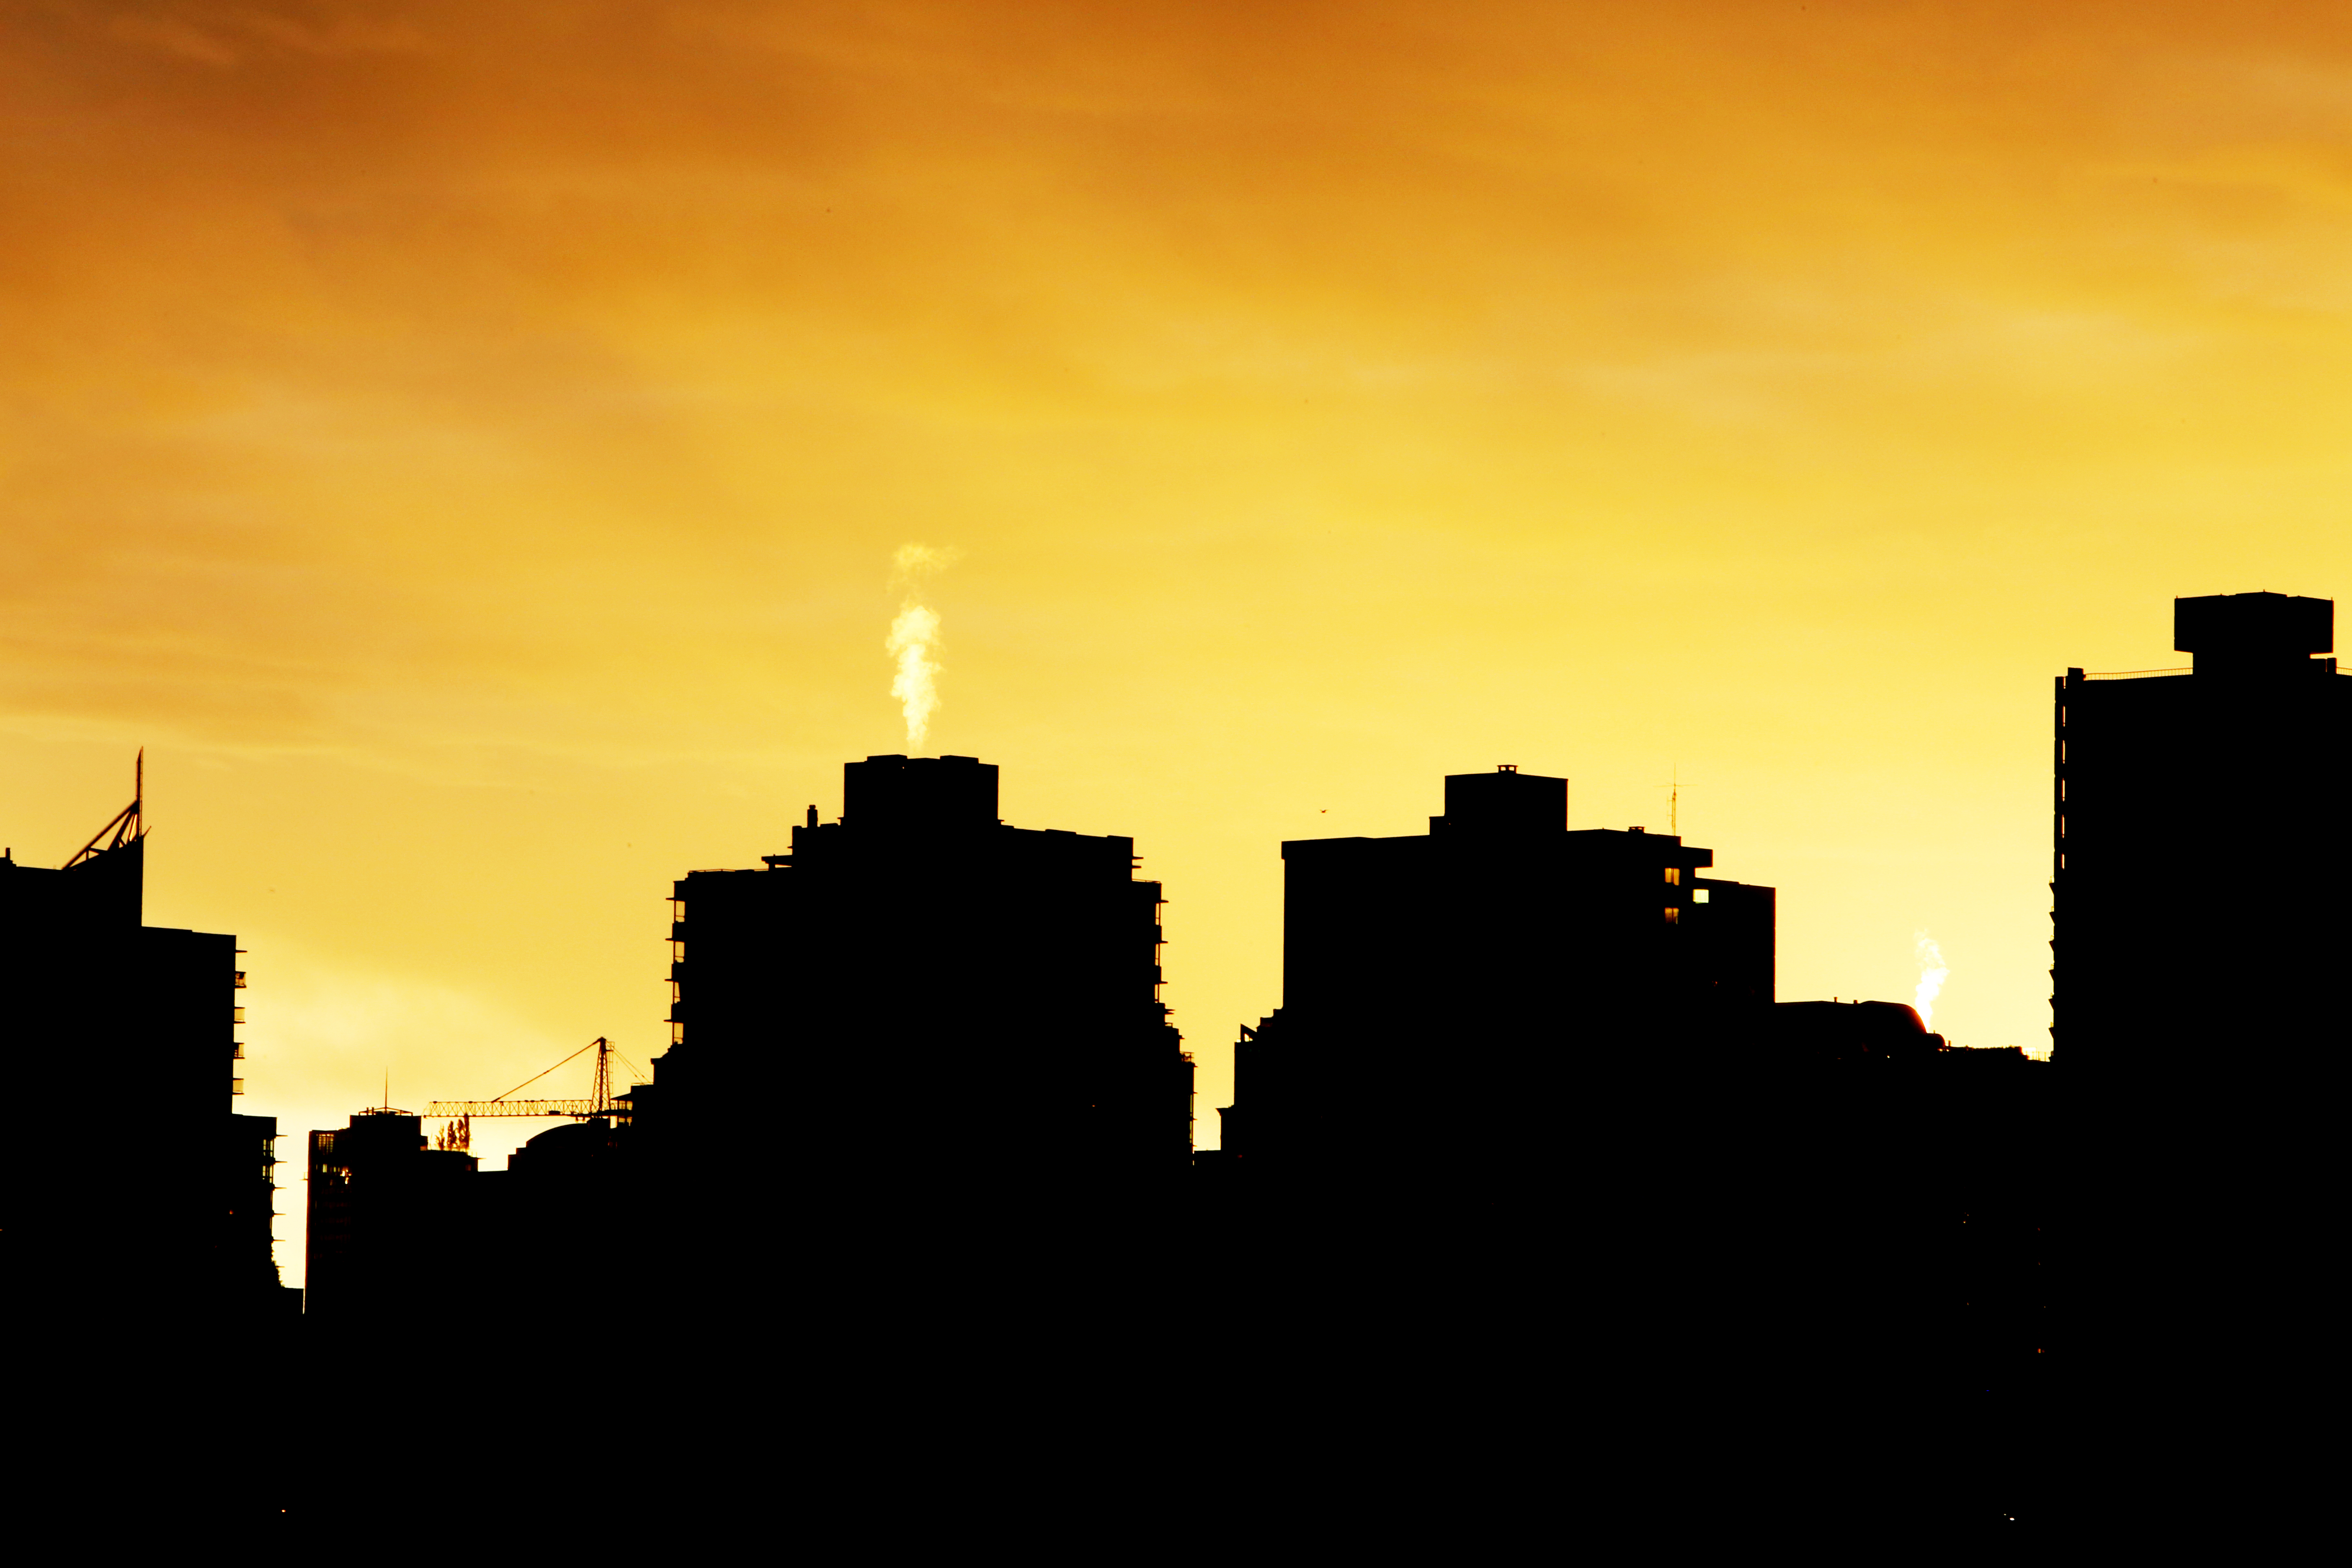 Silhouette of buildings at sunset, silhouettes, shadows, buildings, evening, sunset, city